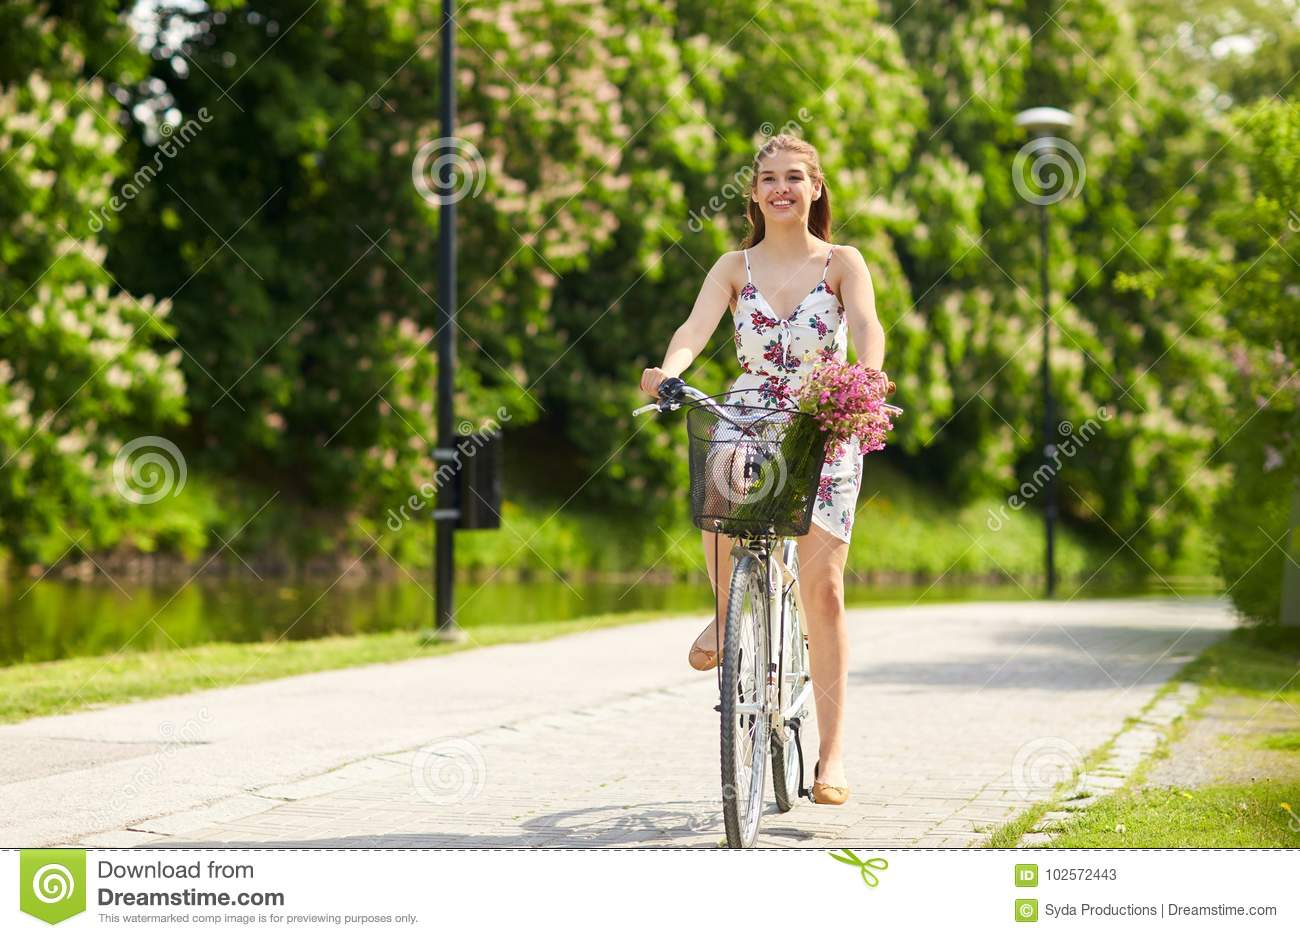 1e093c6599 Royalty-Free Stock Photo. Happy woman riding fixie bicycle in summer park